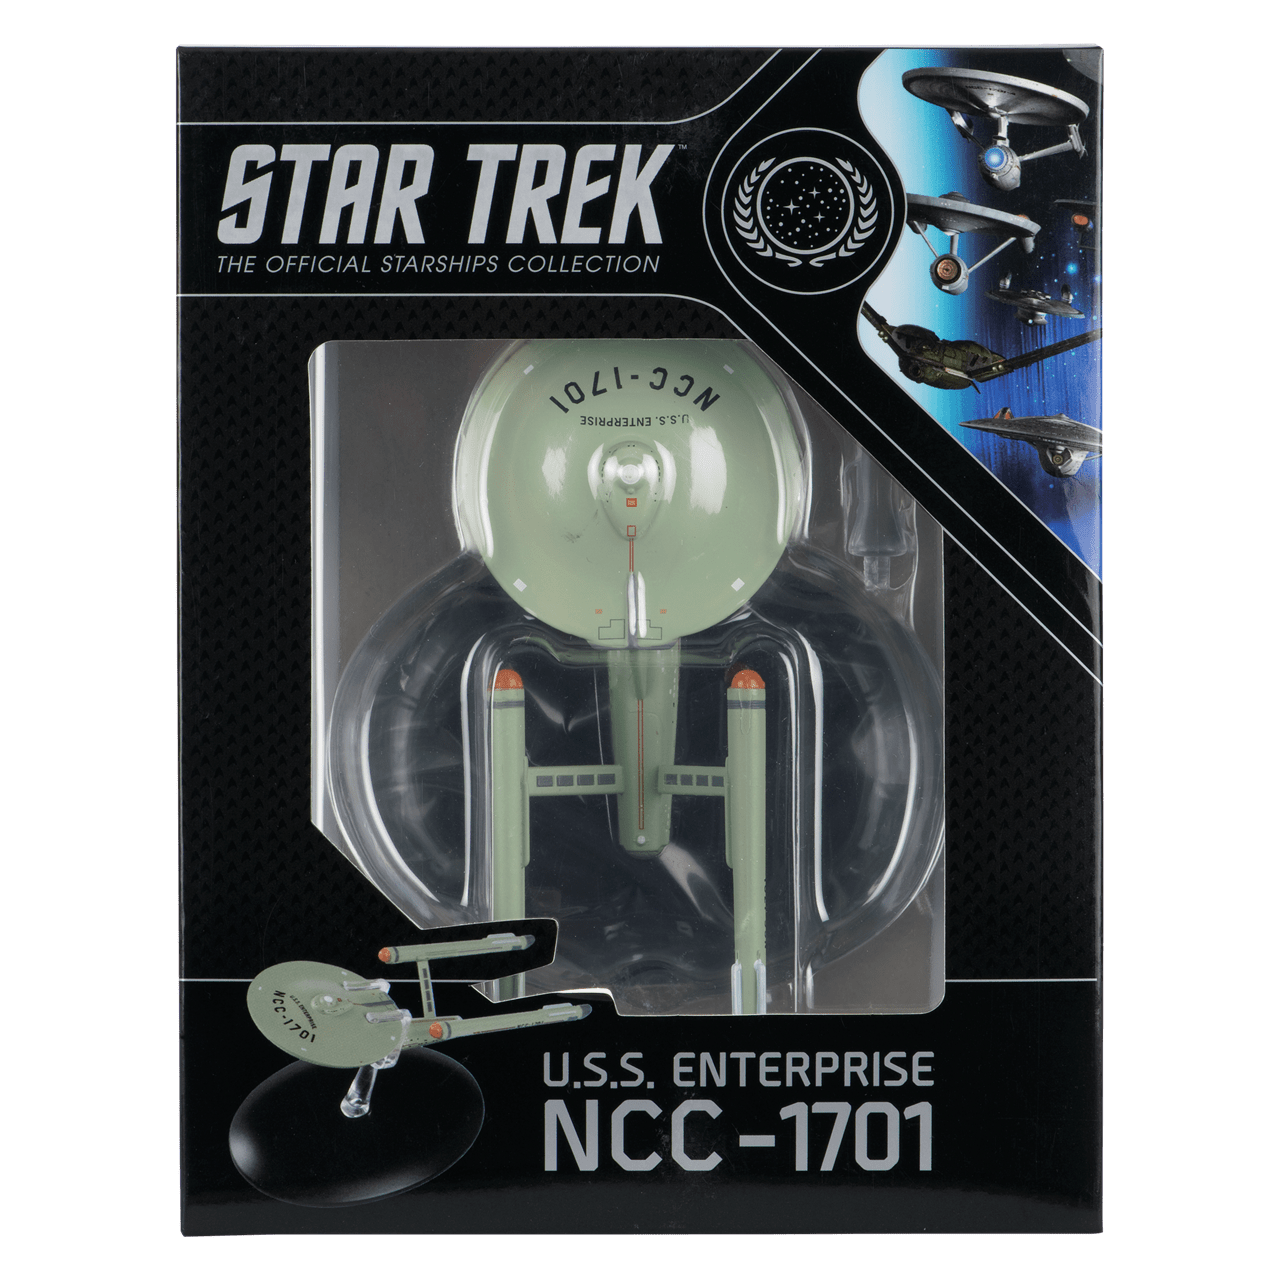 Star Trek USS Enterprise NCC-1701: Original TV Series: Hero Collector - 4